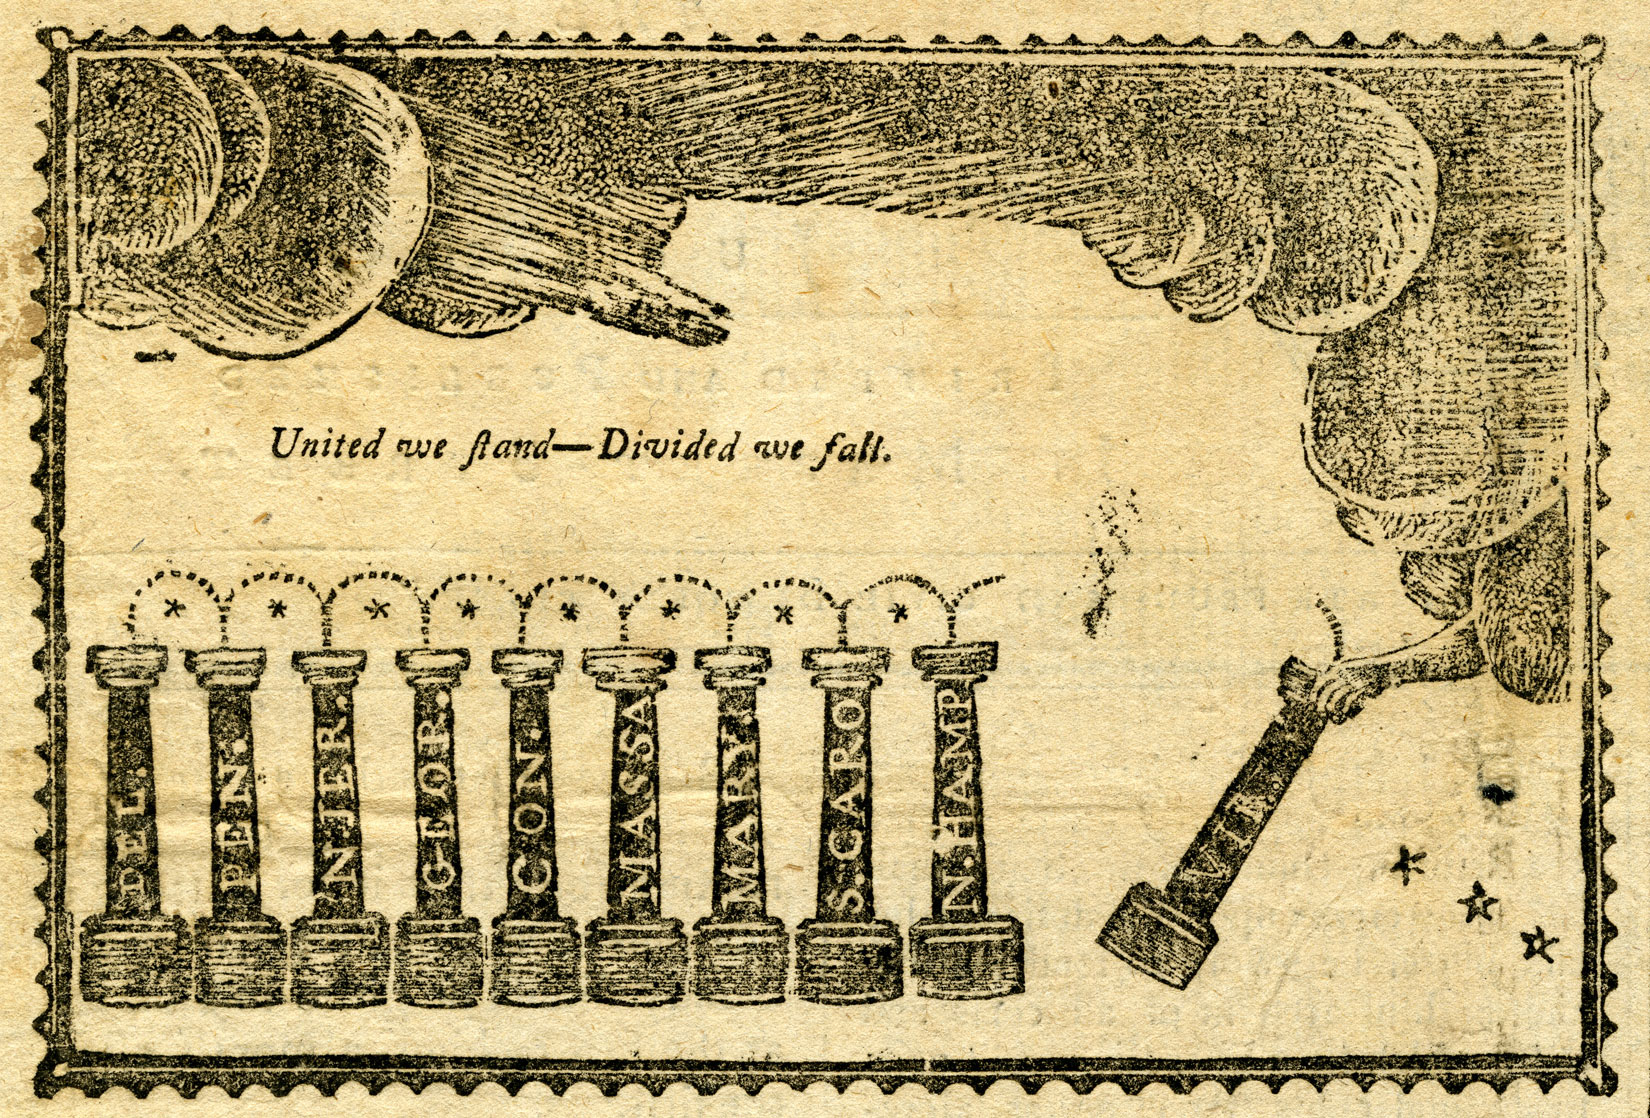 An engraving shows a symbolic drawing. There are nine pillars, each about a third of the height of the drawing, lined up next to each other. They each have letters on them. From left to right, they read